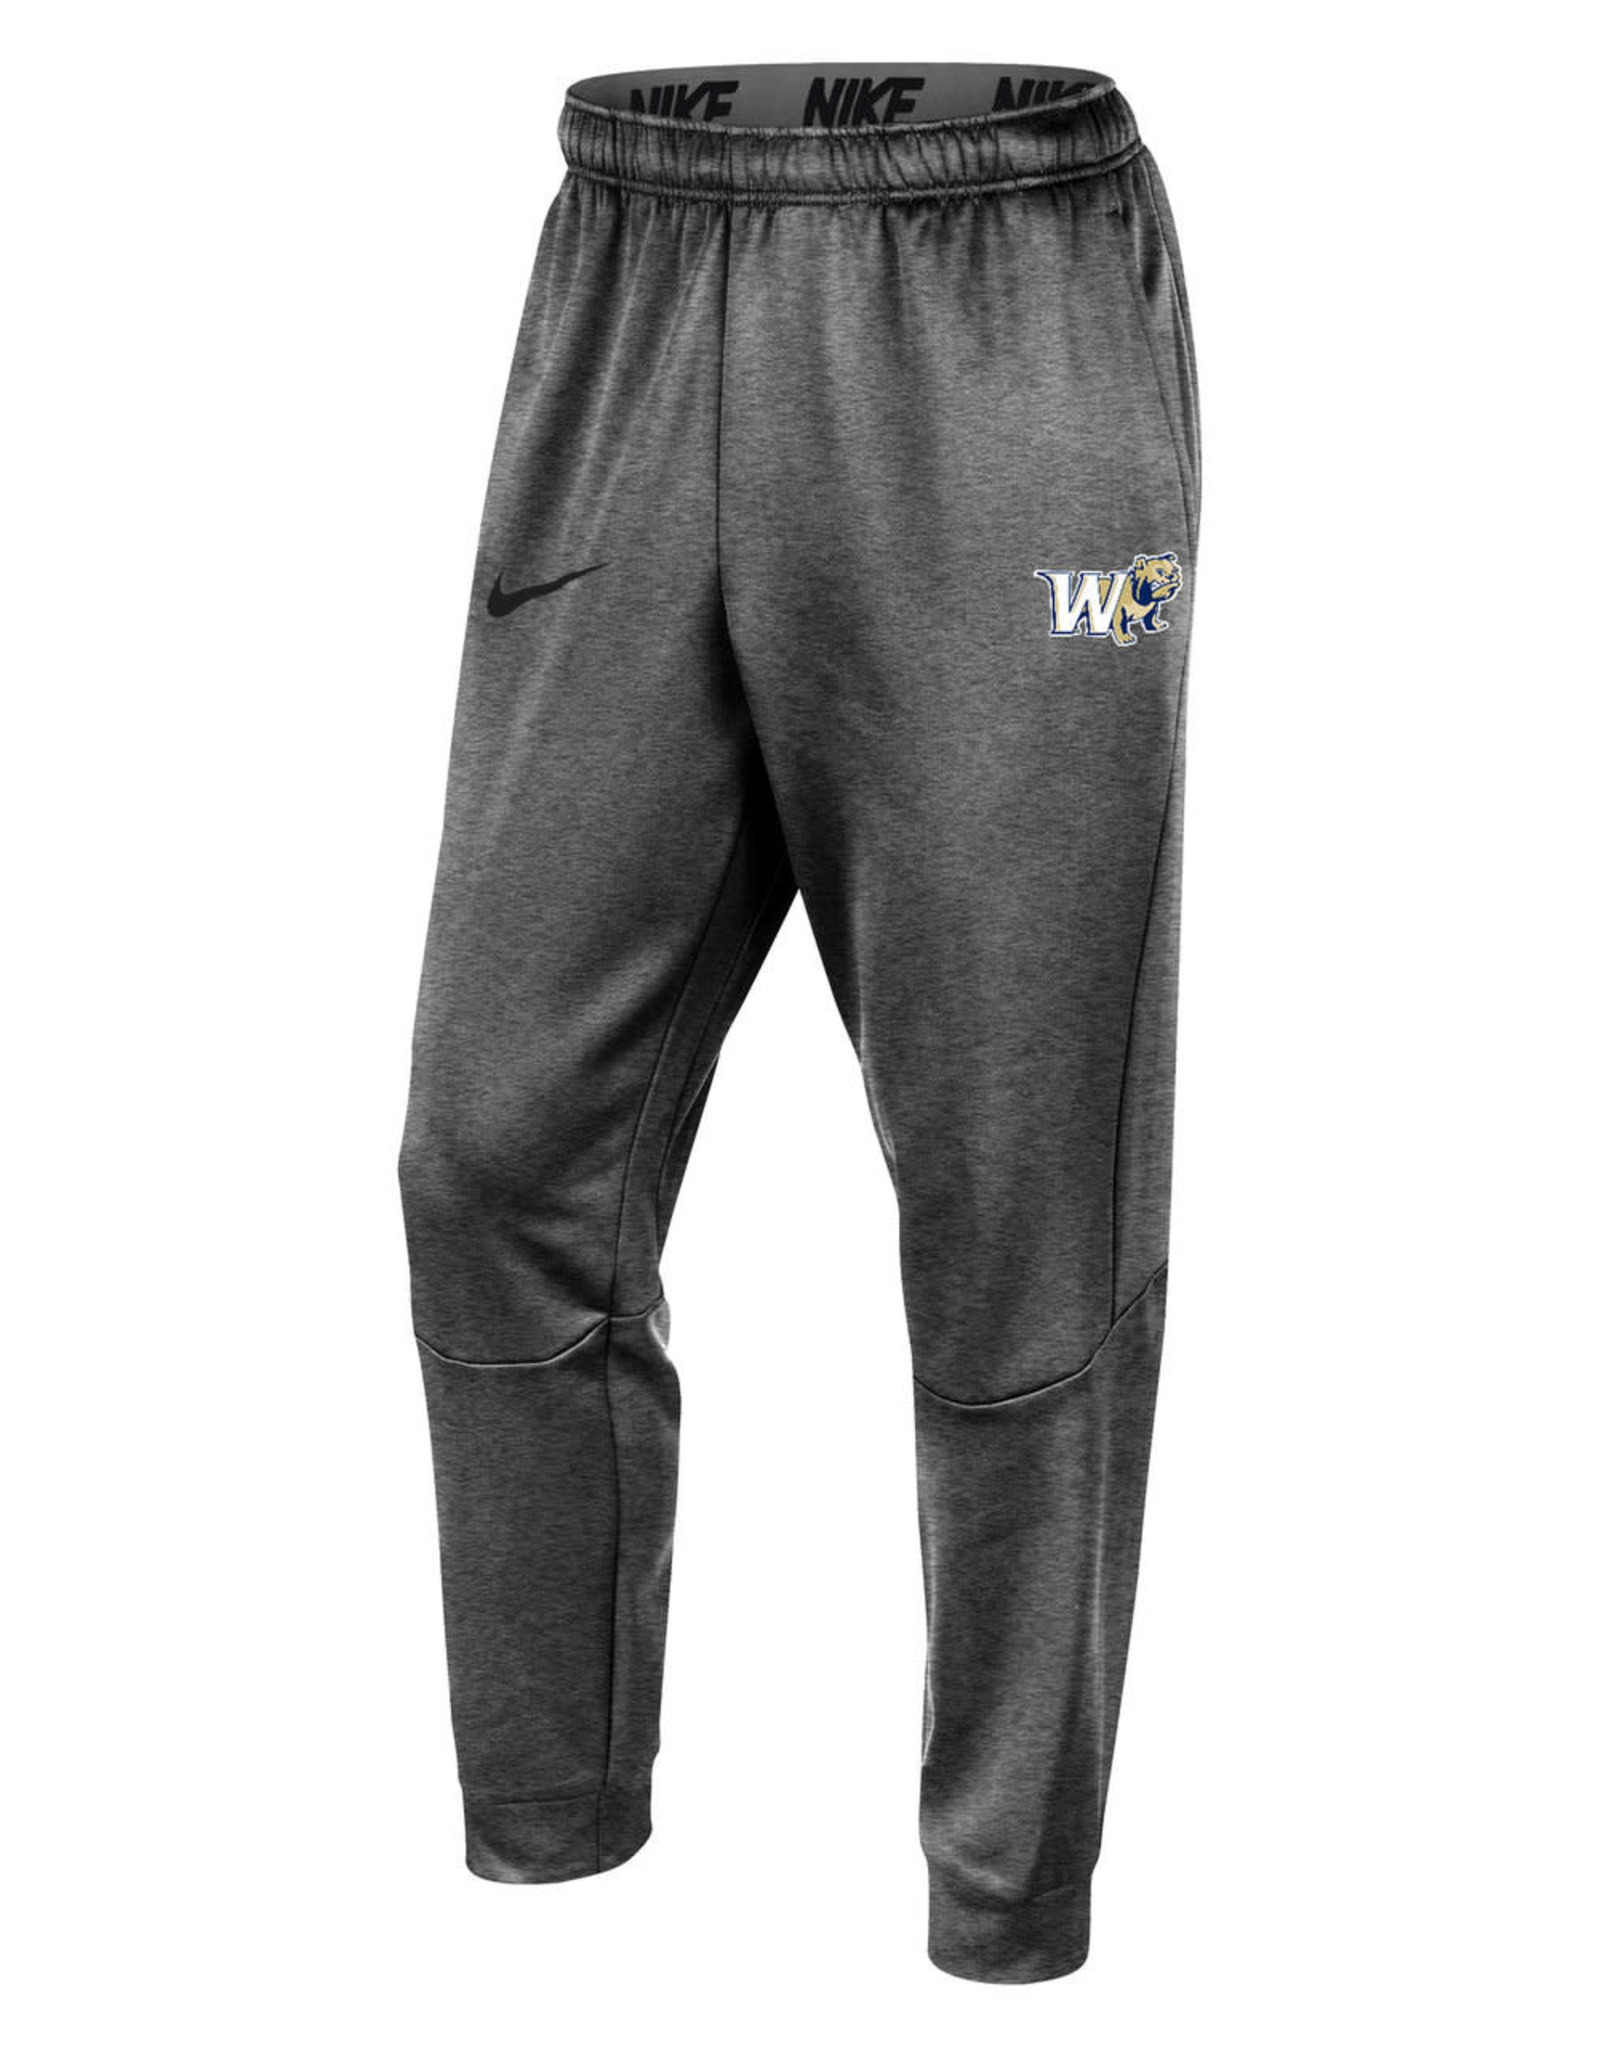 Nike Heather Grey Therma Tapered Pants